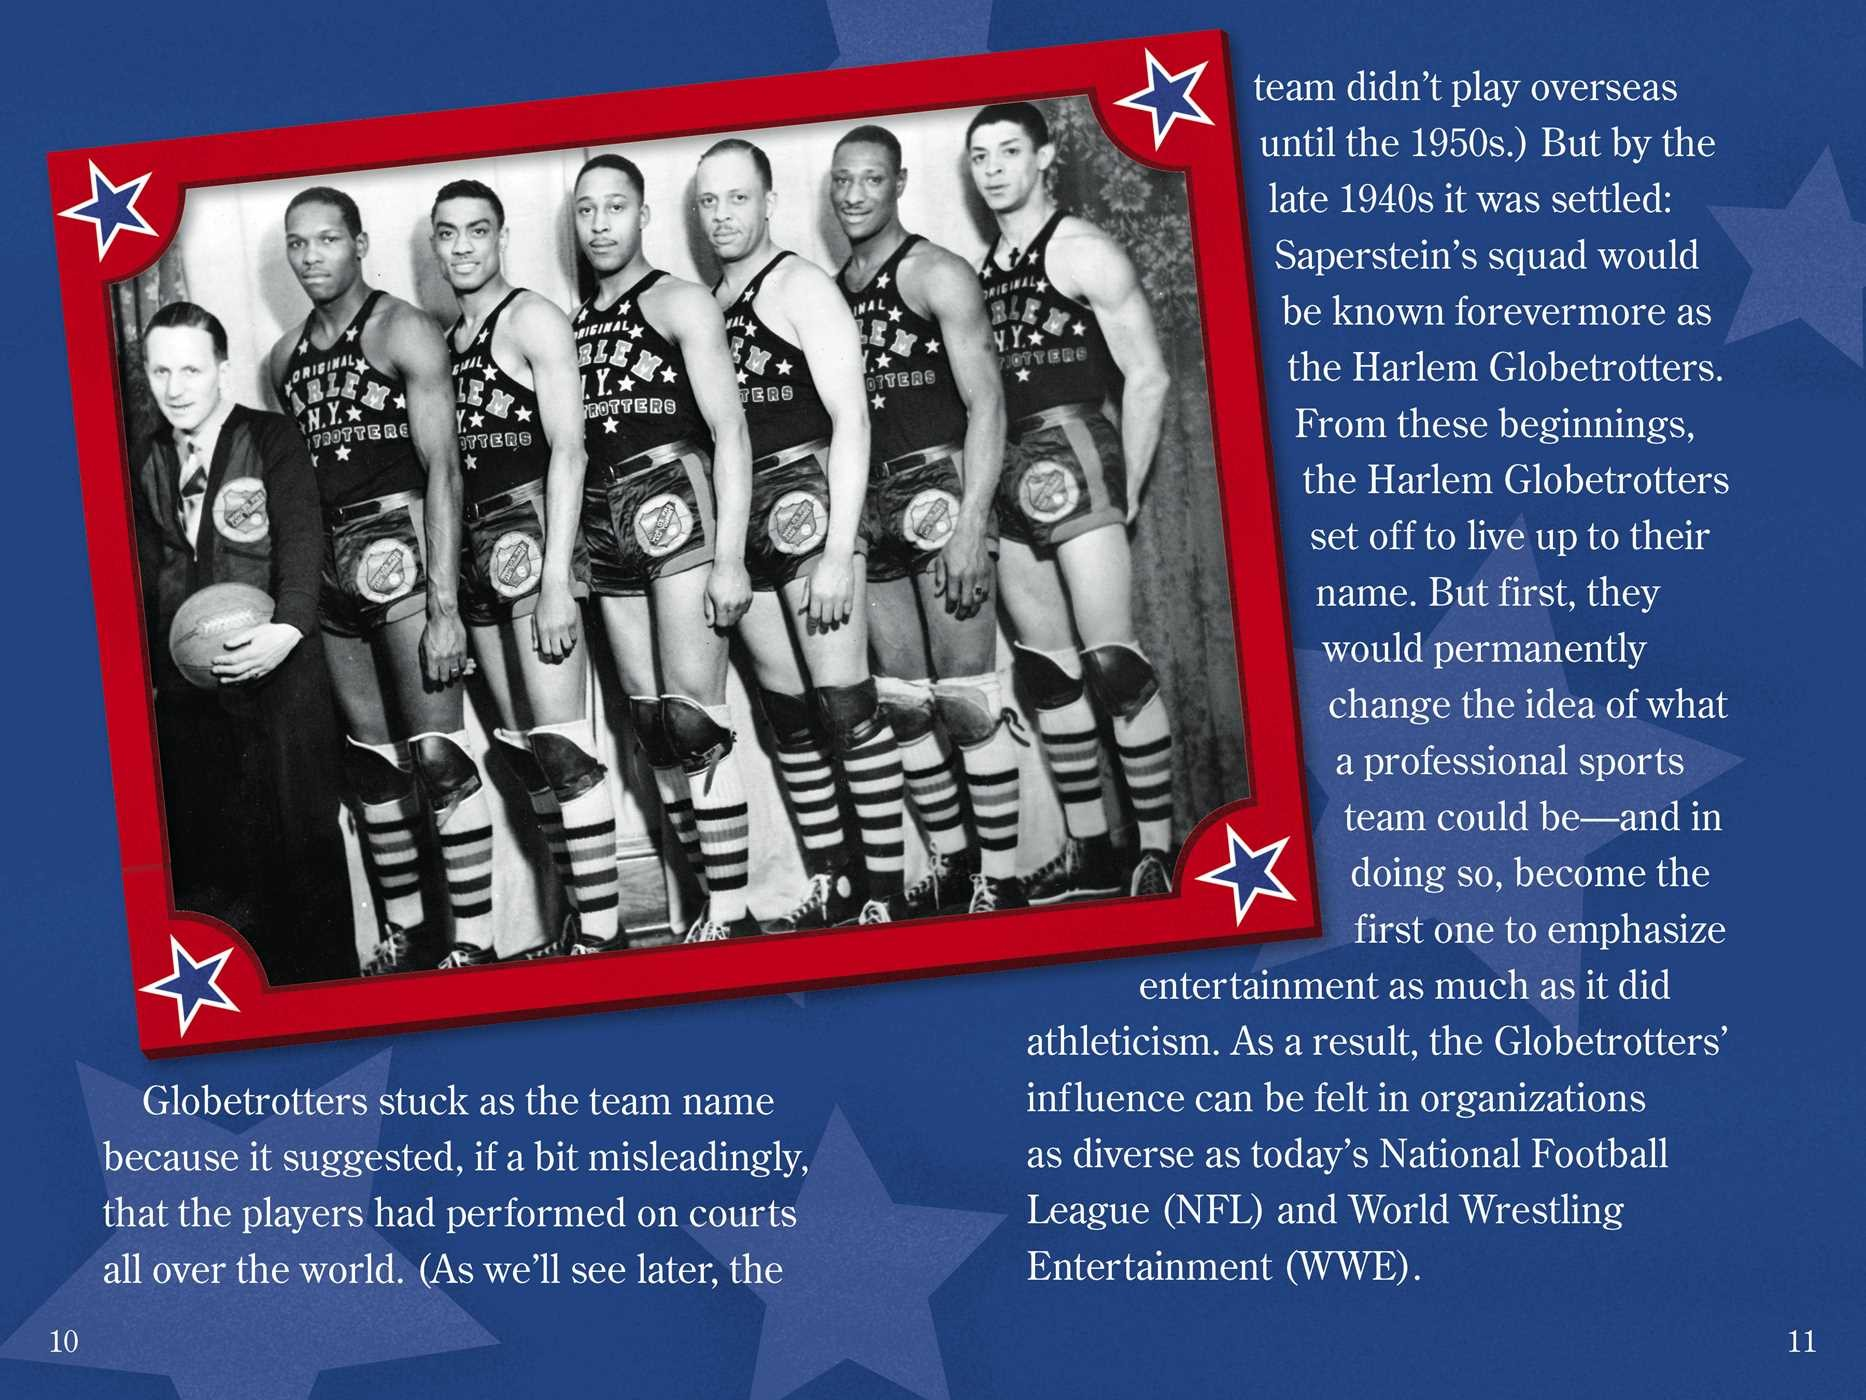 The superstar story of the harlem globetrotters 9781481487481.in03